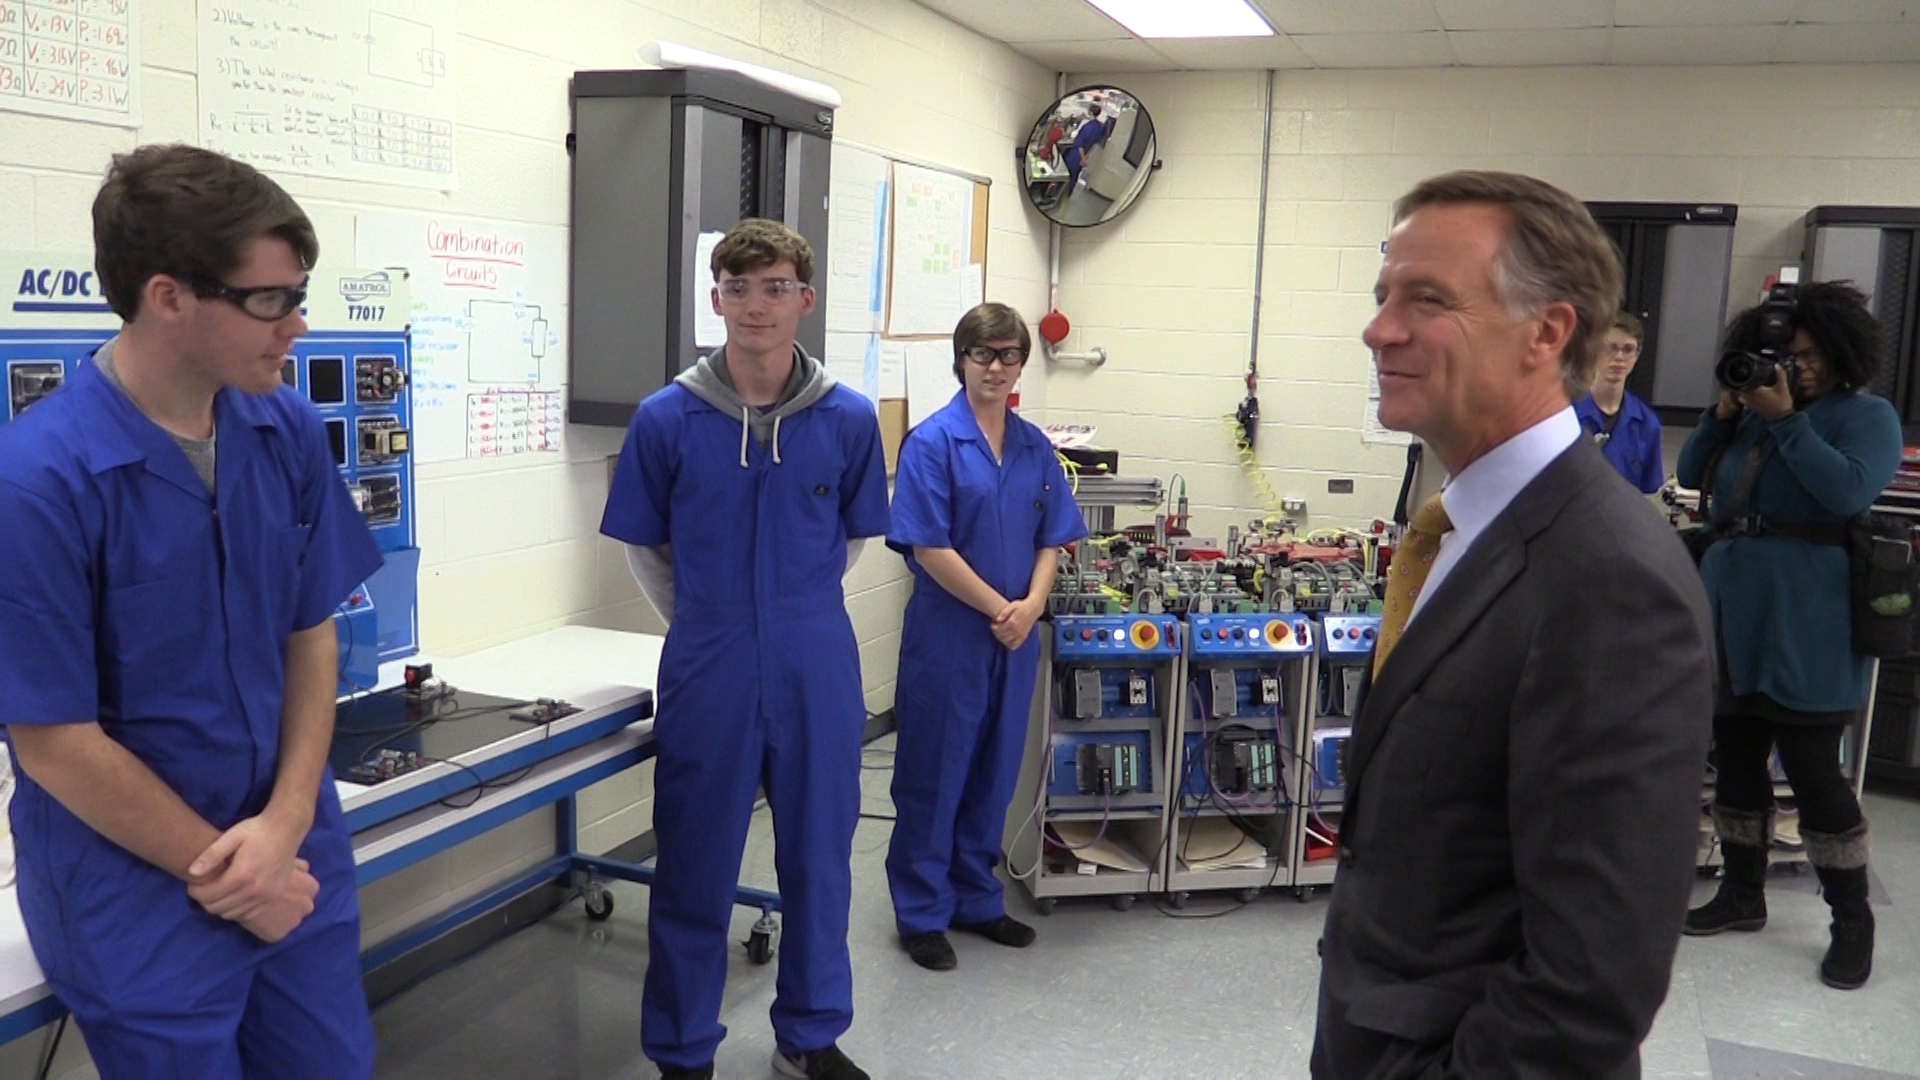 VIDEO - Governor Haslam tours WCHS